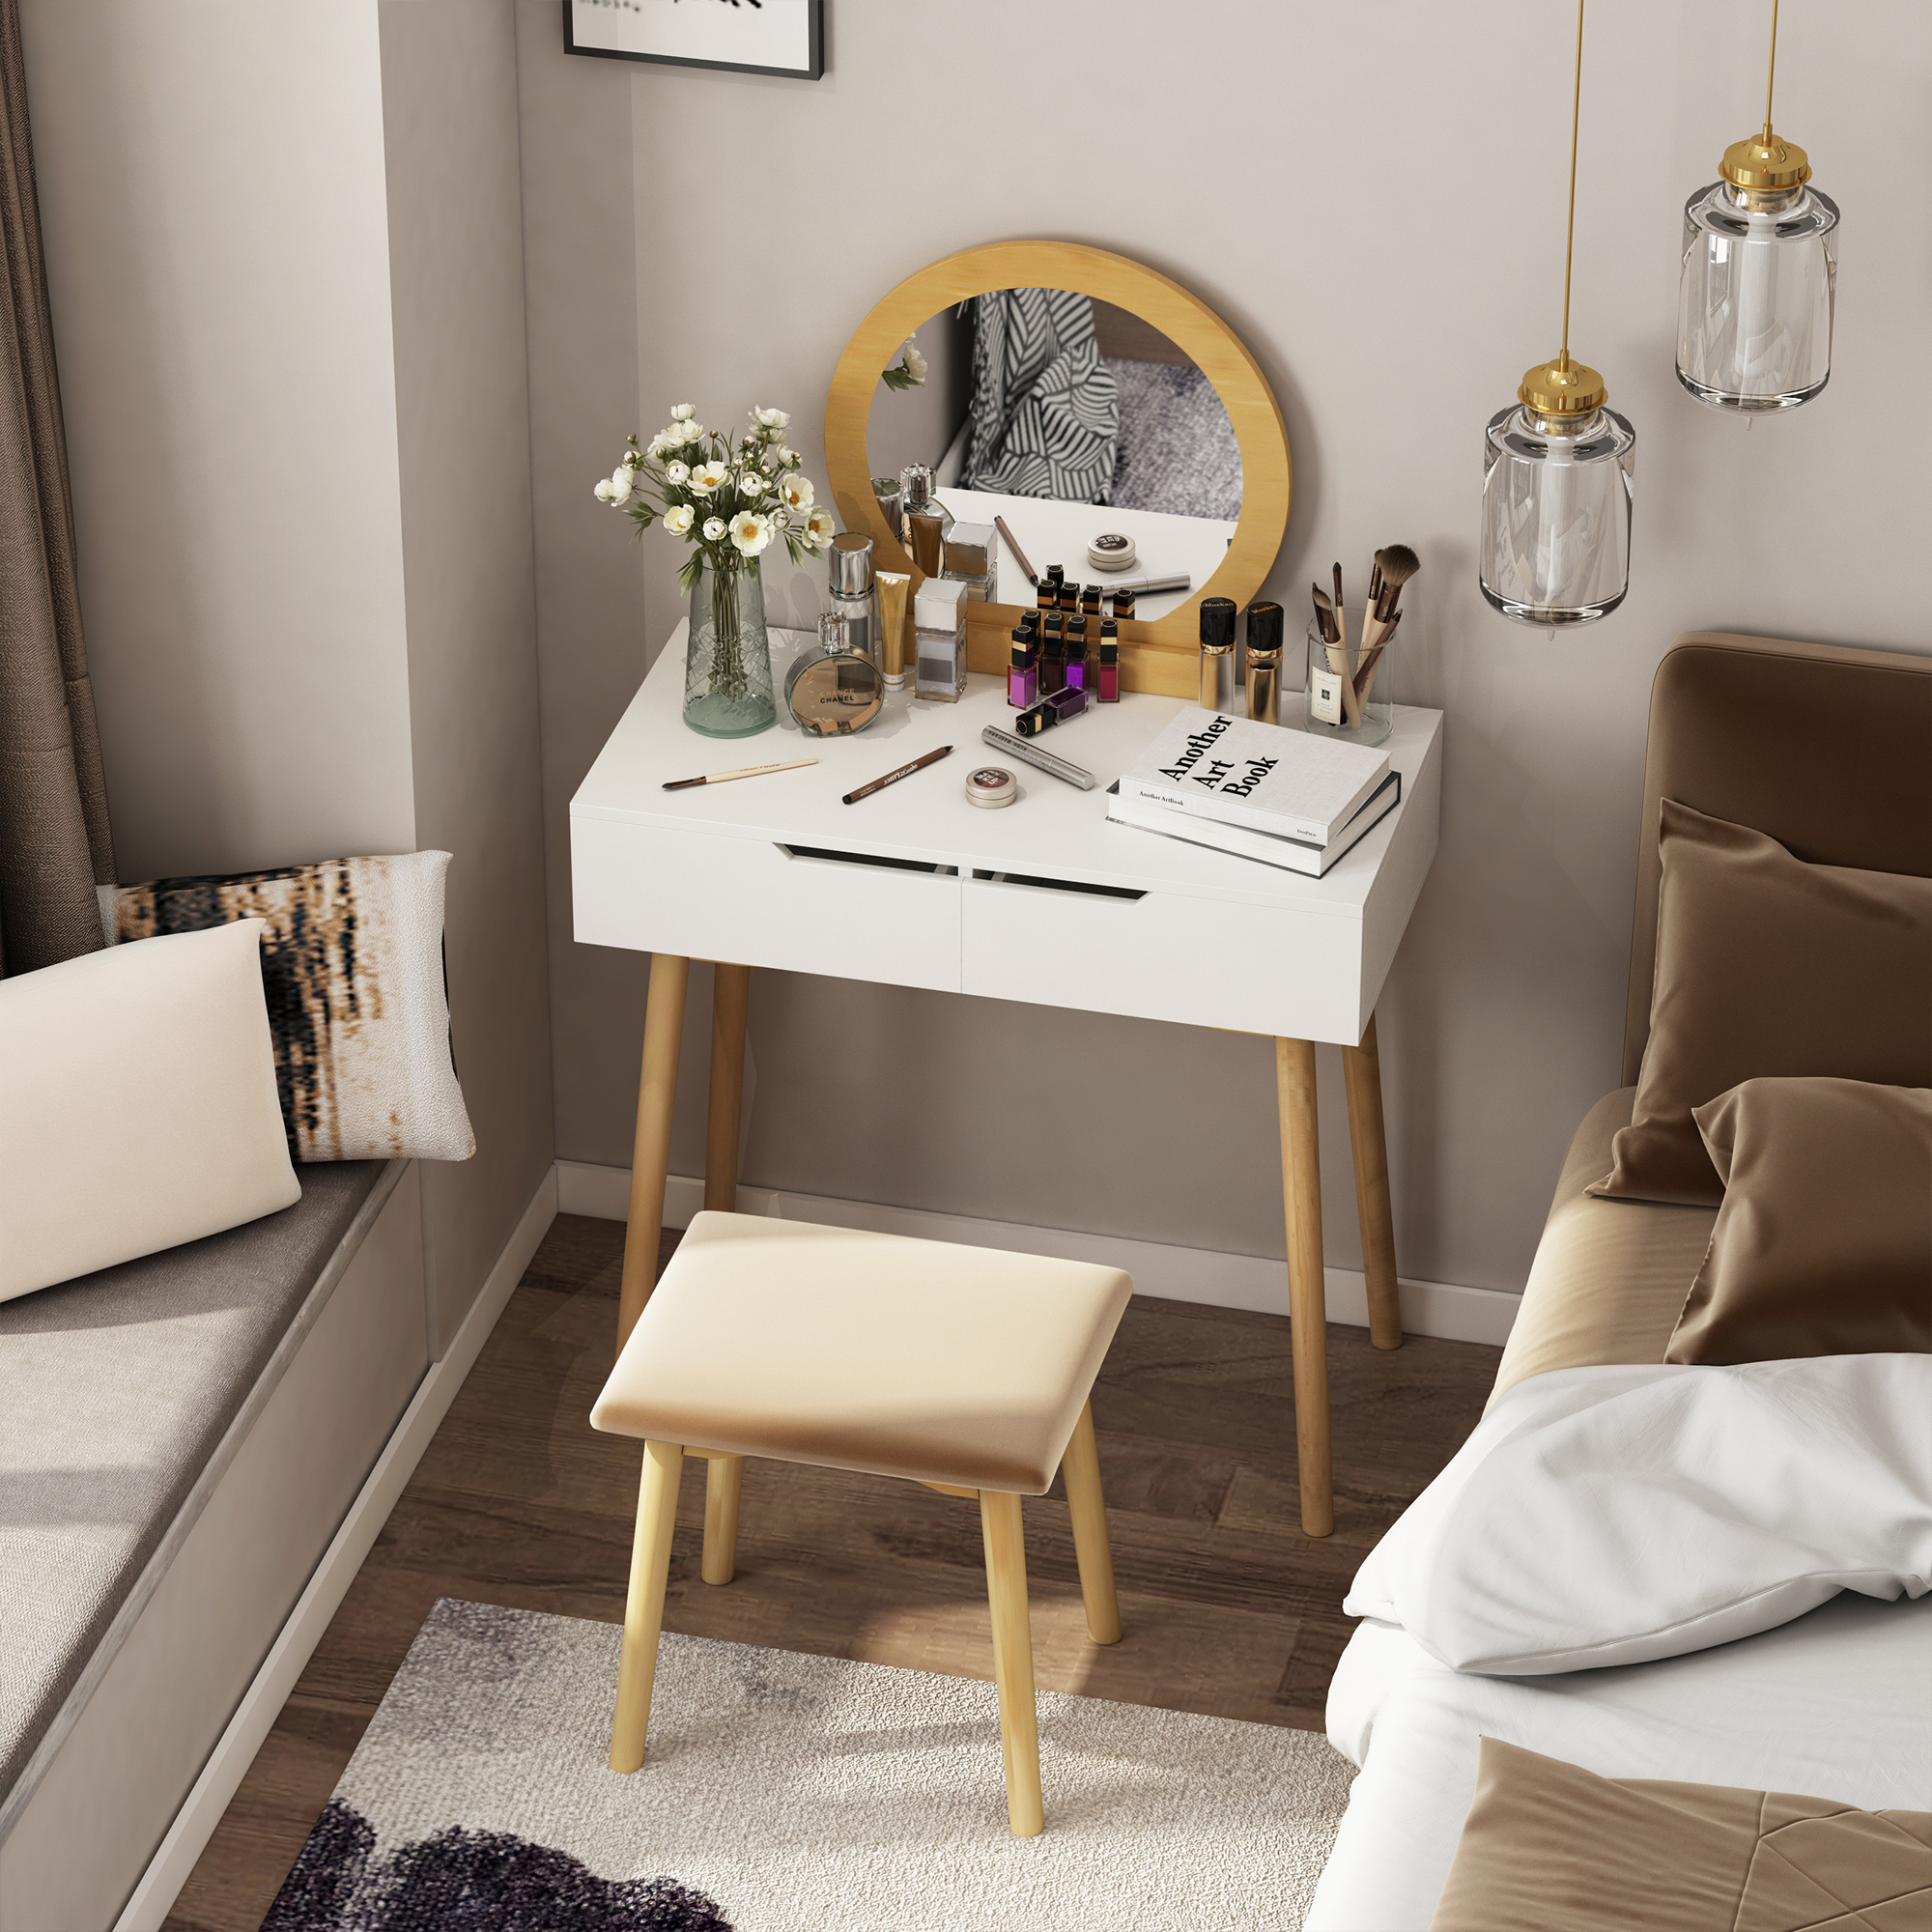 thumbnail 4 - Vanity Table Set Dressing Table w/ Cushioned Stool Drawer Makeup Table